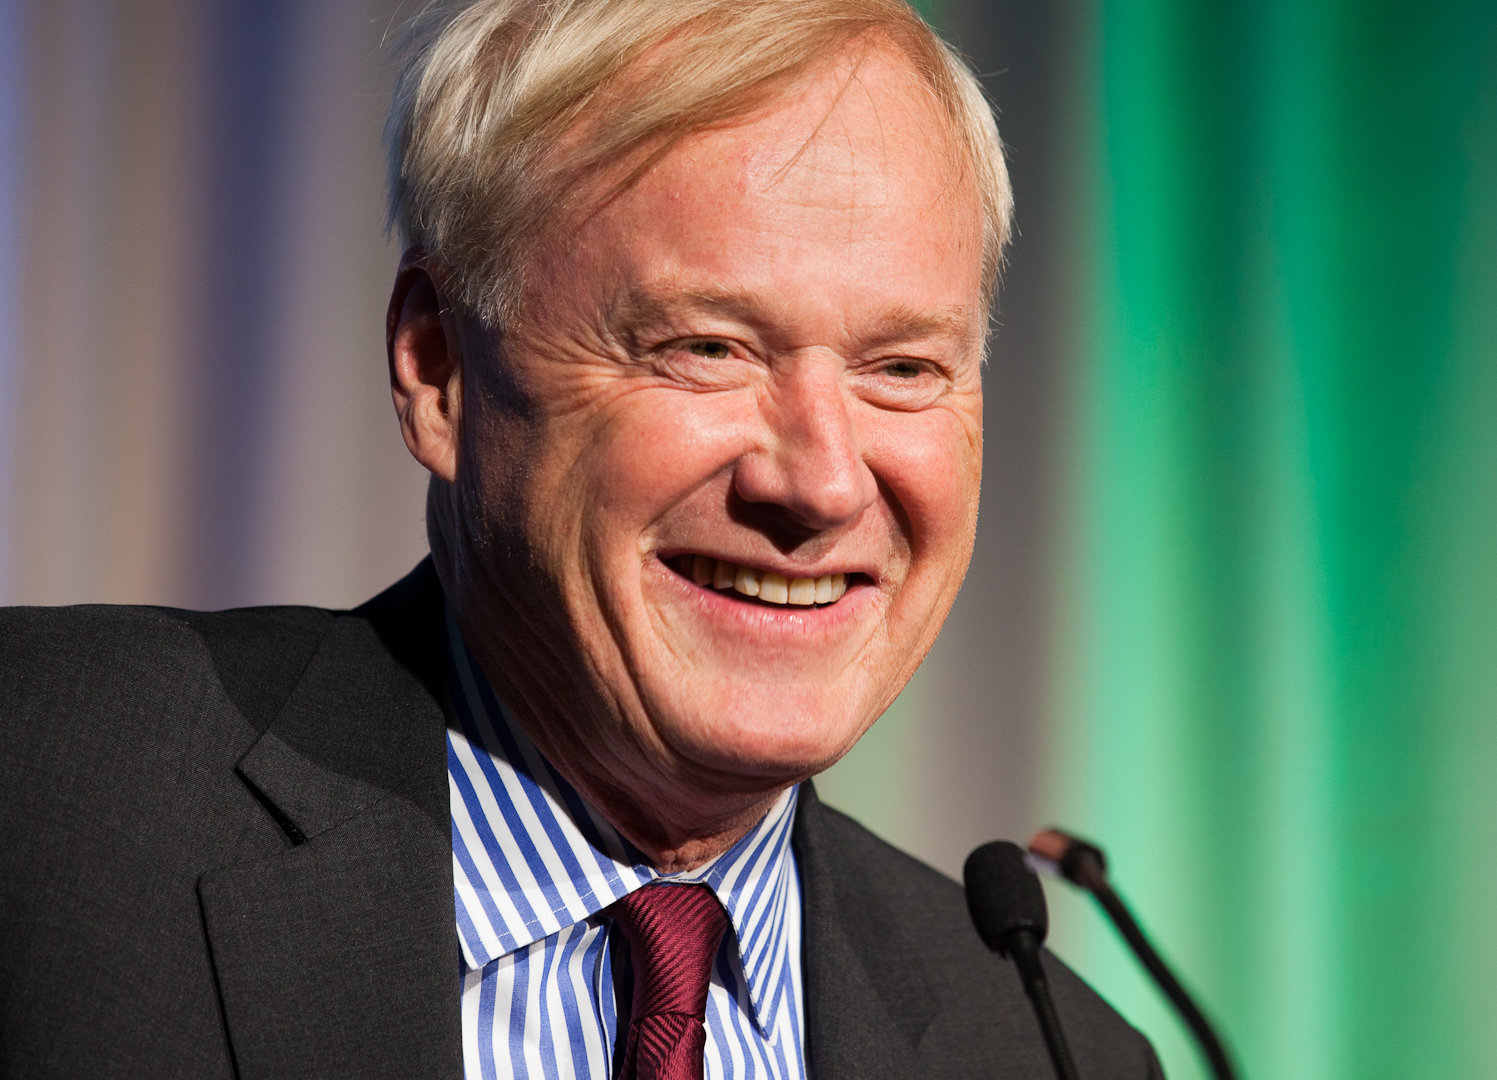 Chris Matthews, Host of HARDBALL